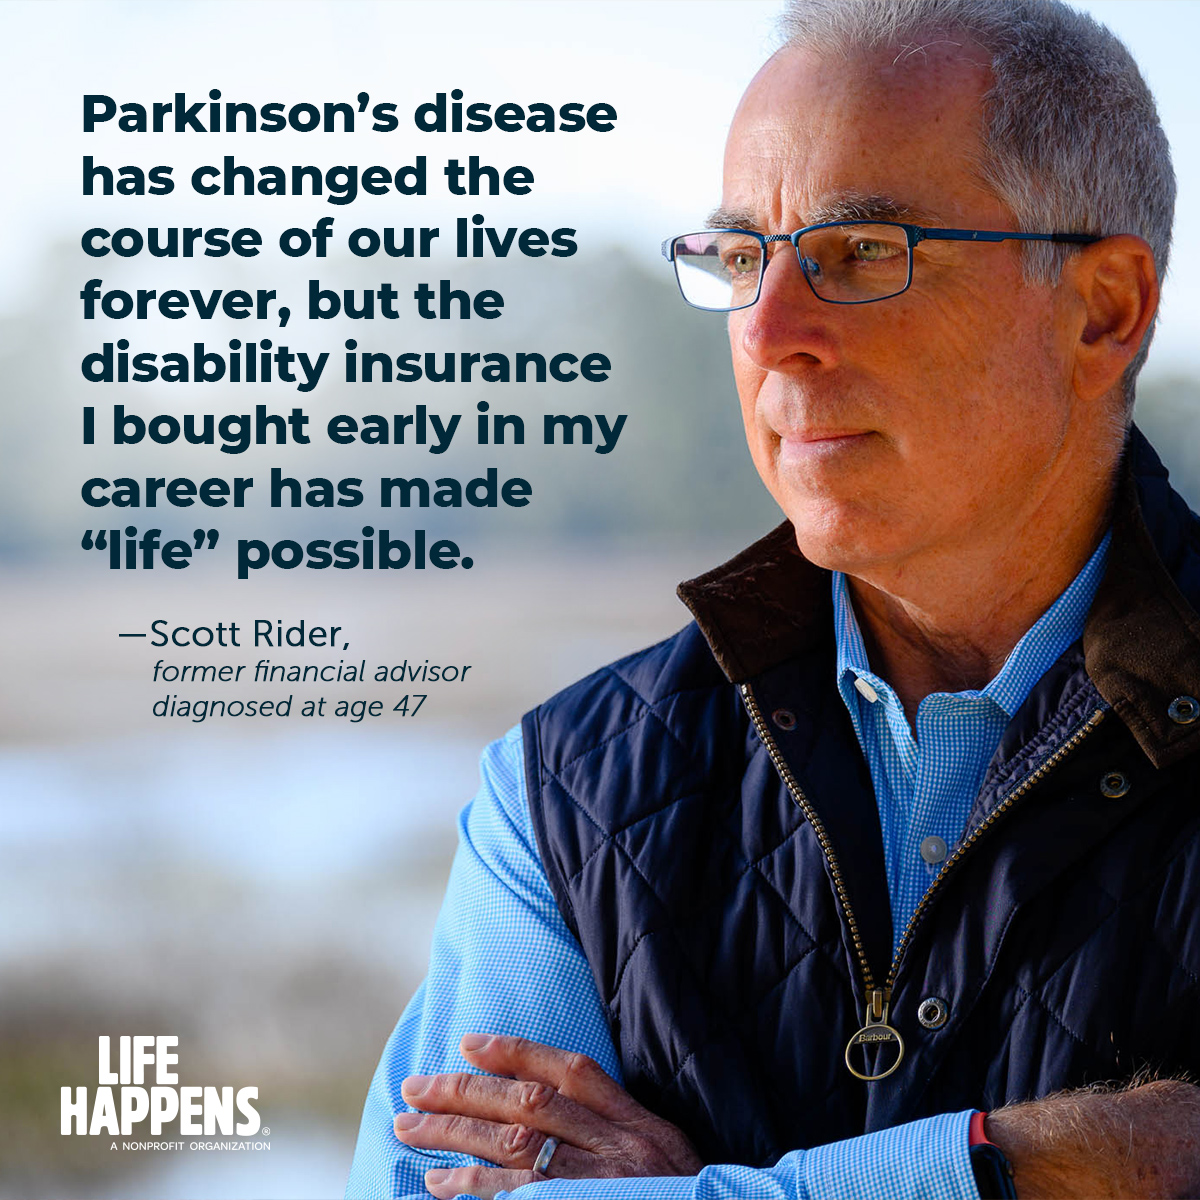 """Real Life Stories quote from Scott Rider, former financial advisor who was diagnosed with Parkinson's at age 47: """"Parkinson's disease has changed the course of our lives forever, but the disability insurance I bought early in my career has made 'life' possible."""""""